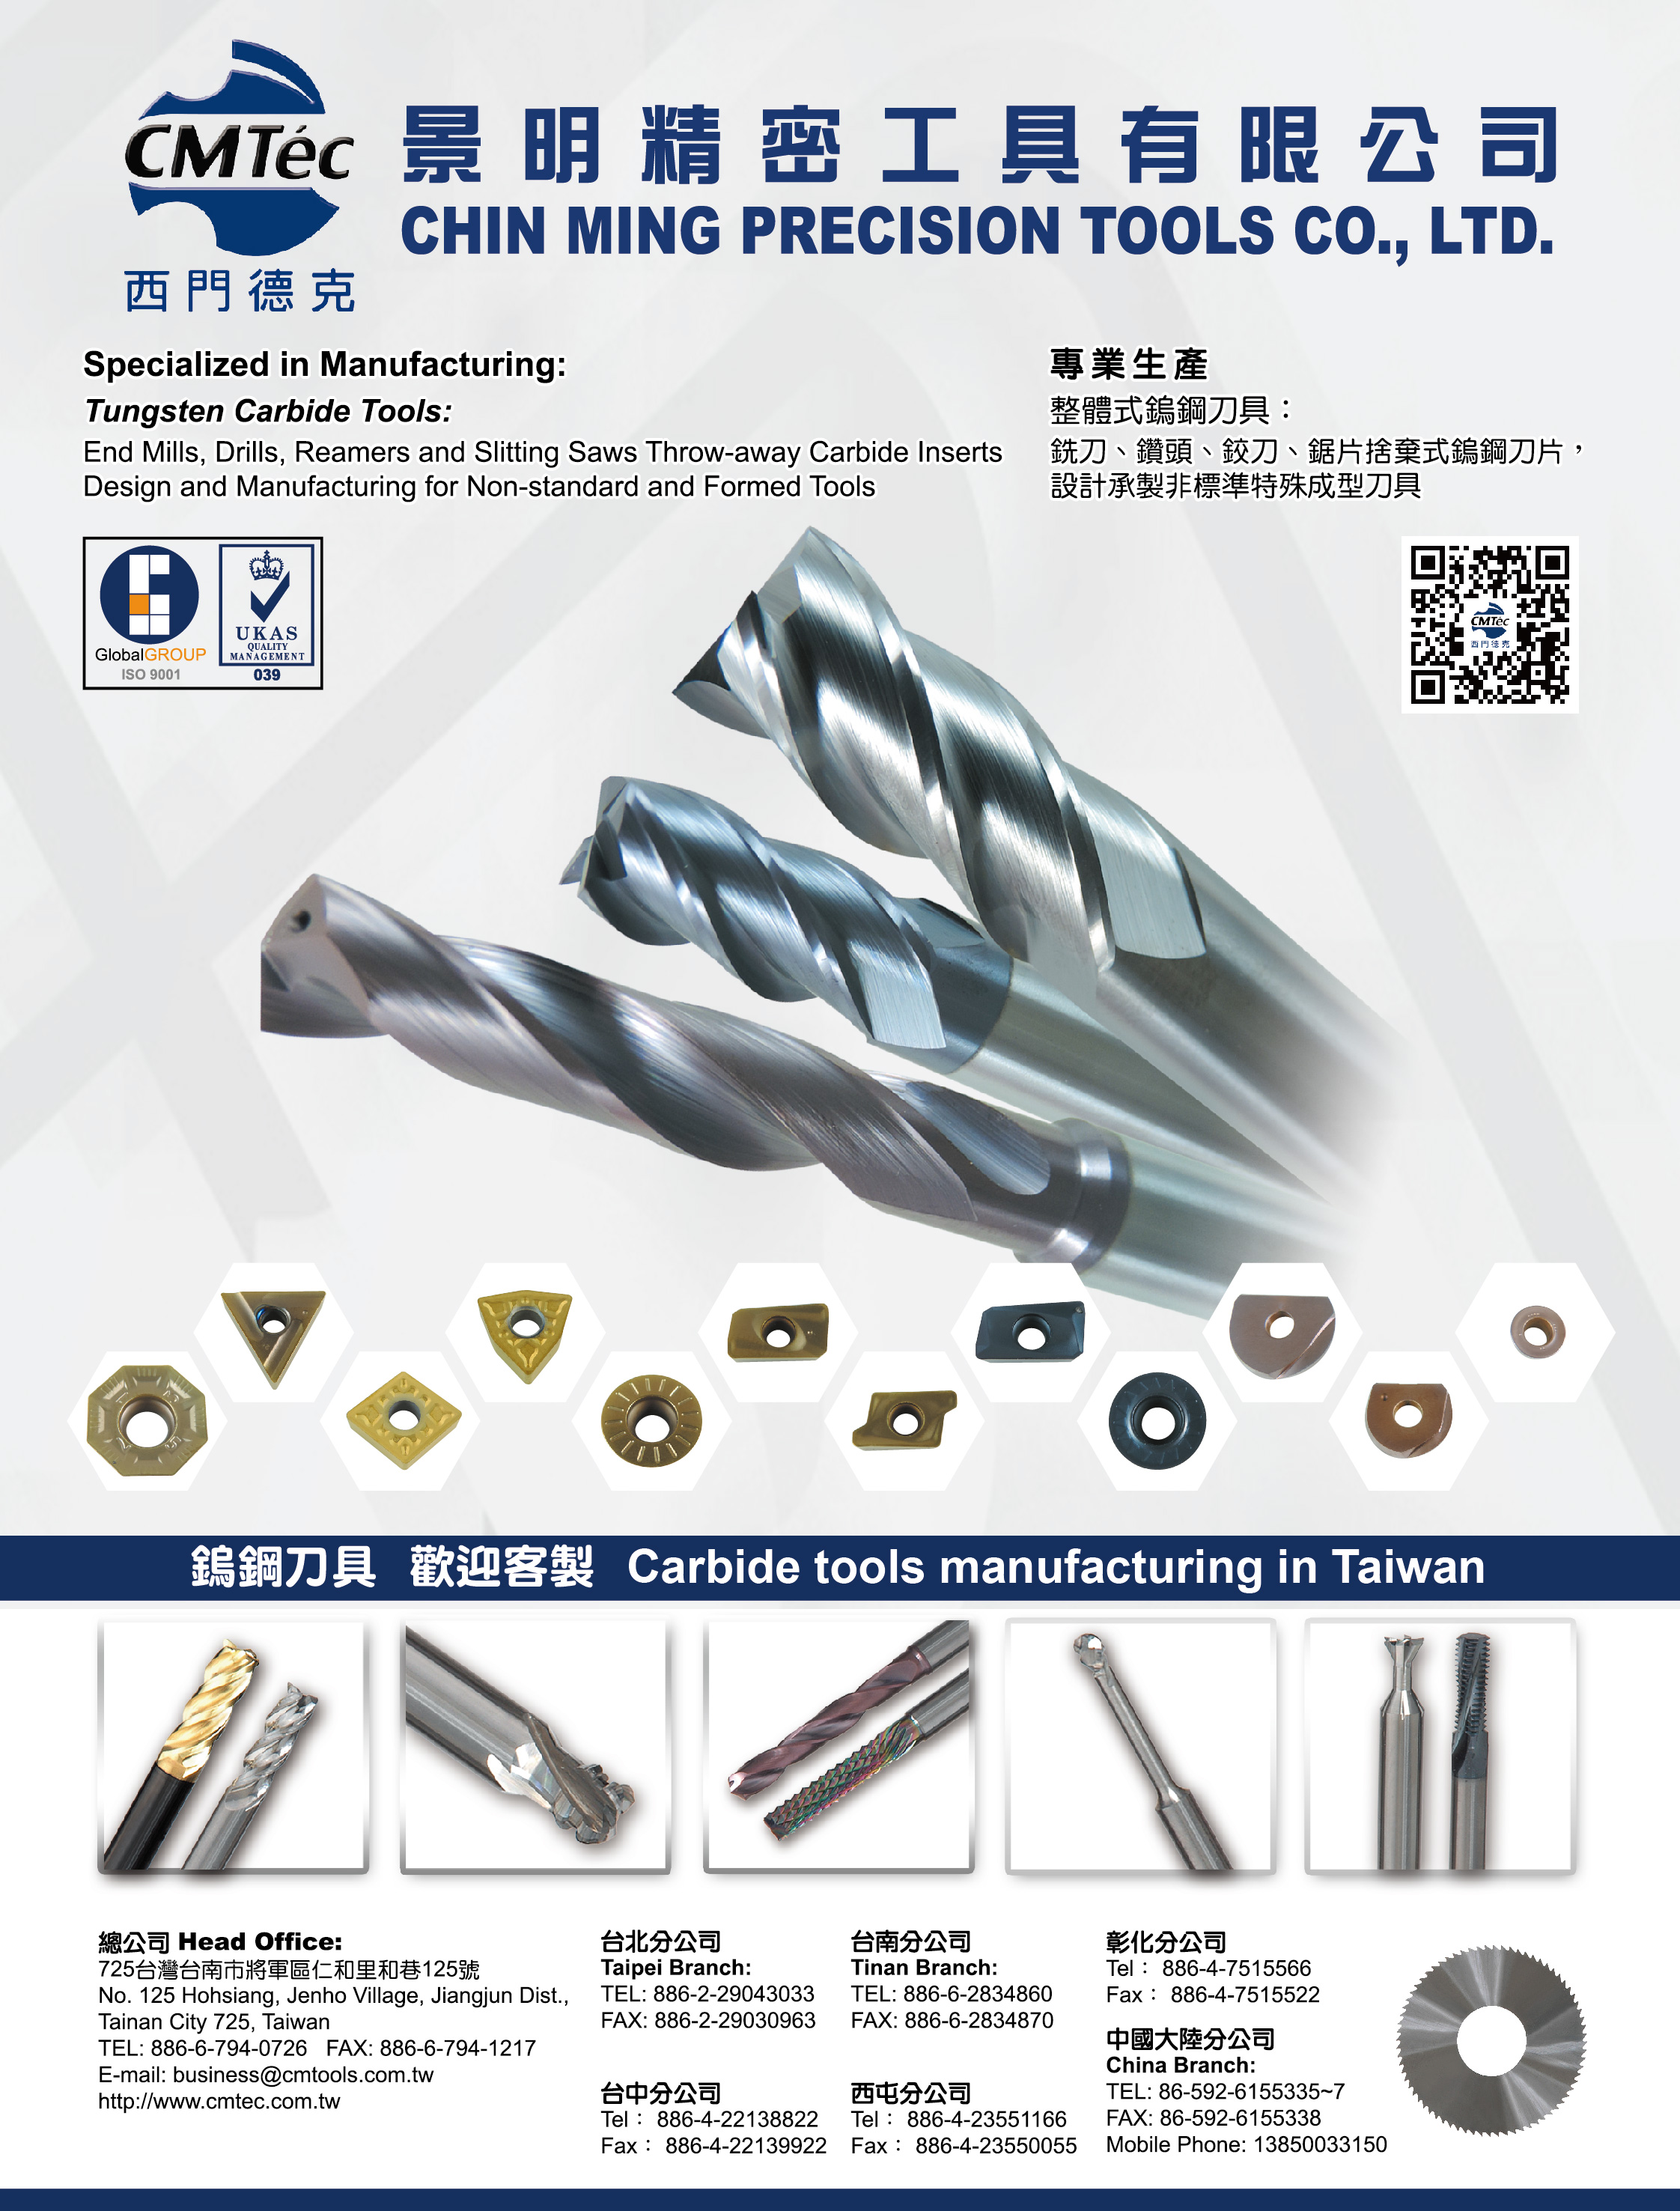 CHIN MING PRECISION TOOLS CO., LTD.